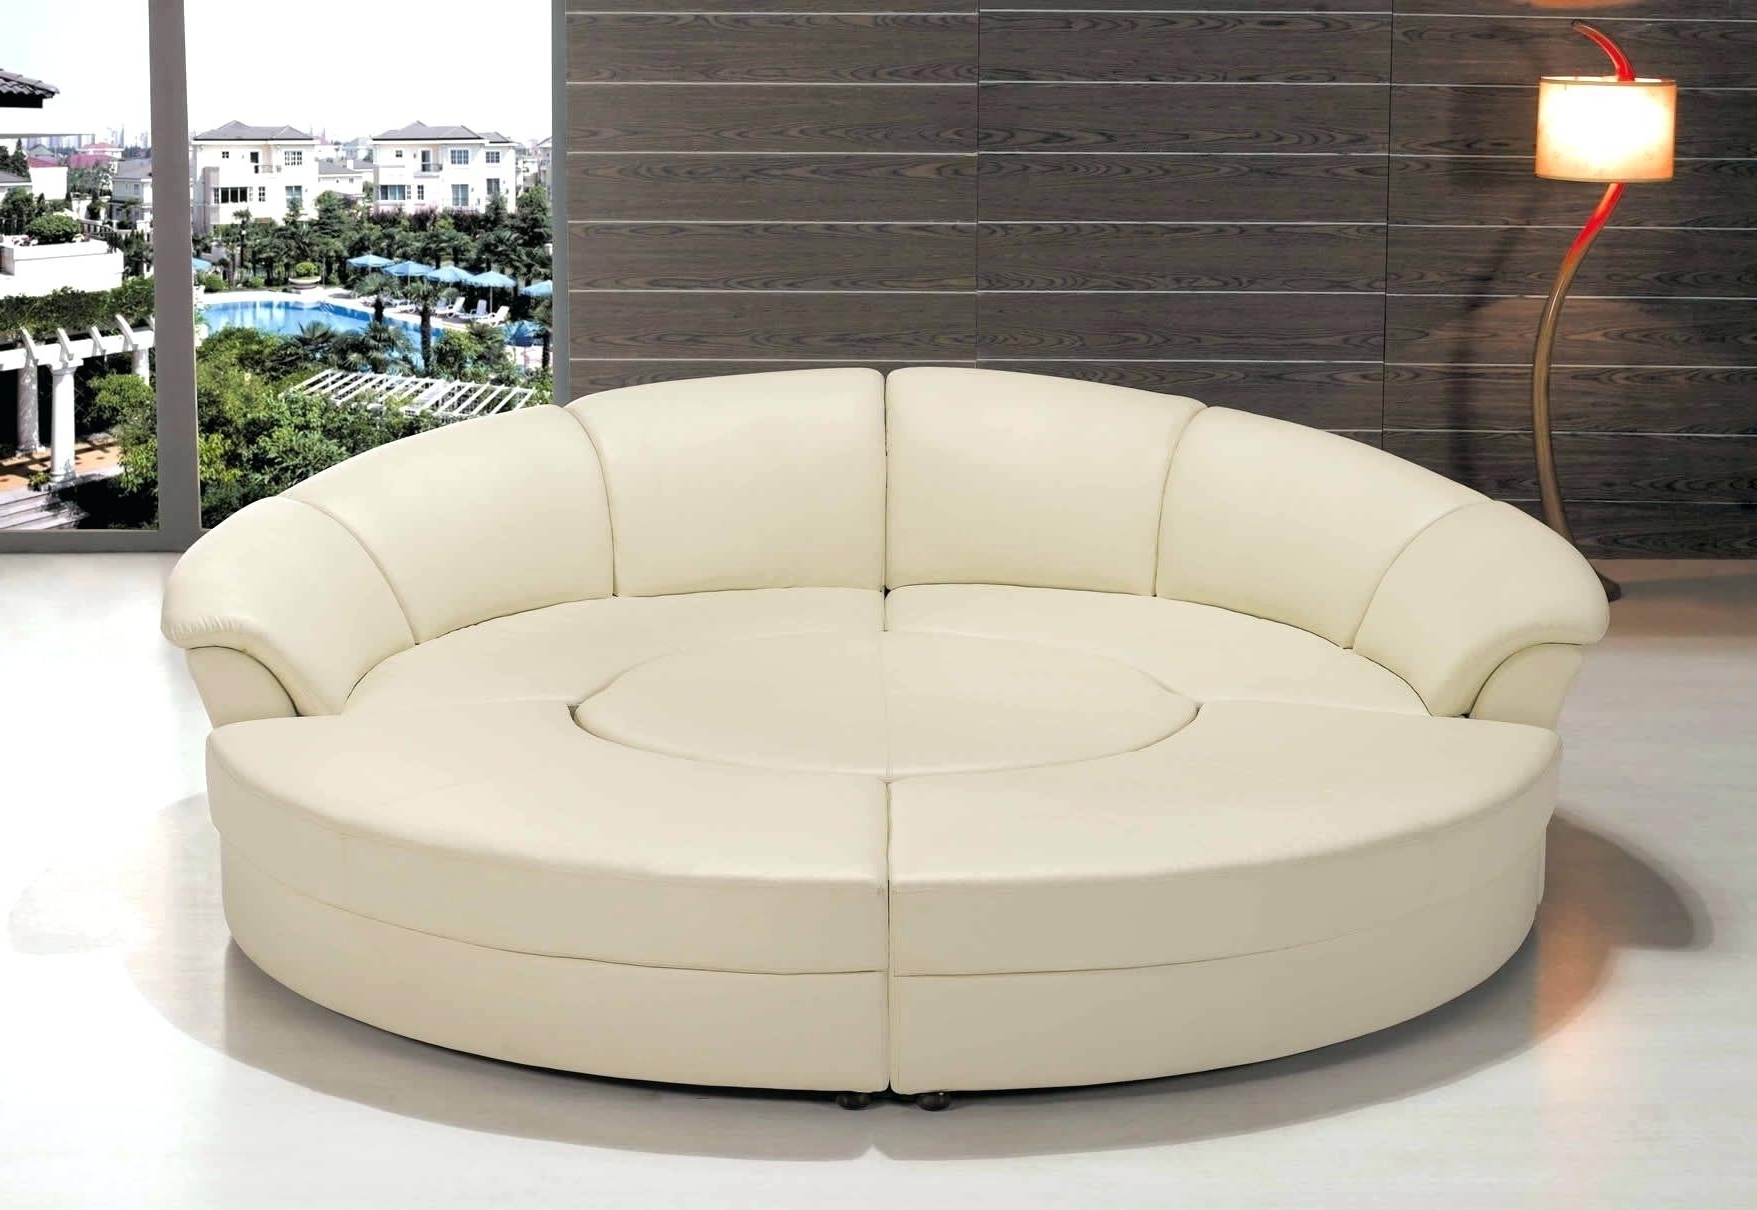 Recent Furniture : Round Sectional Sofa Covers New Round Sofa Covers Pertaining To Rounded Sofas (View 5 of 20)